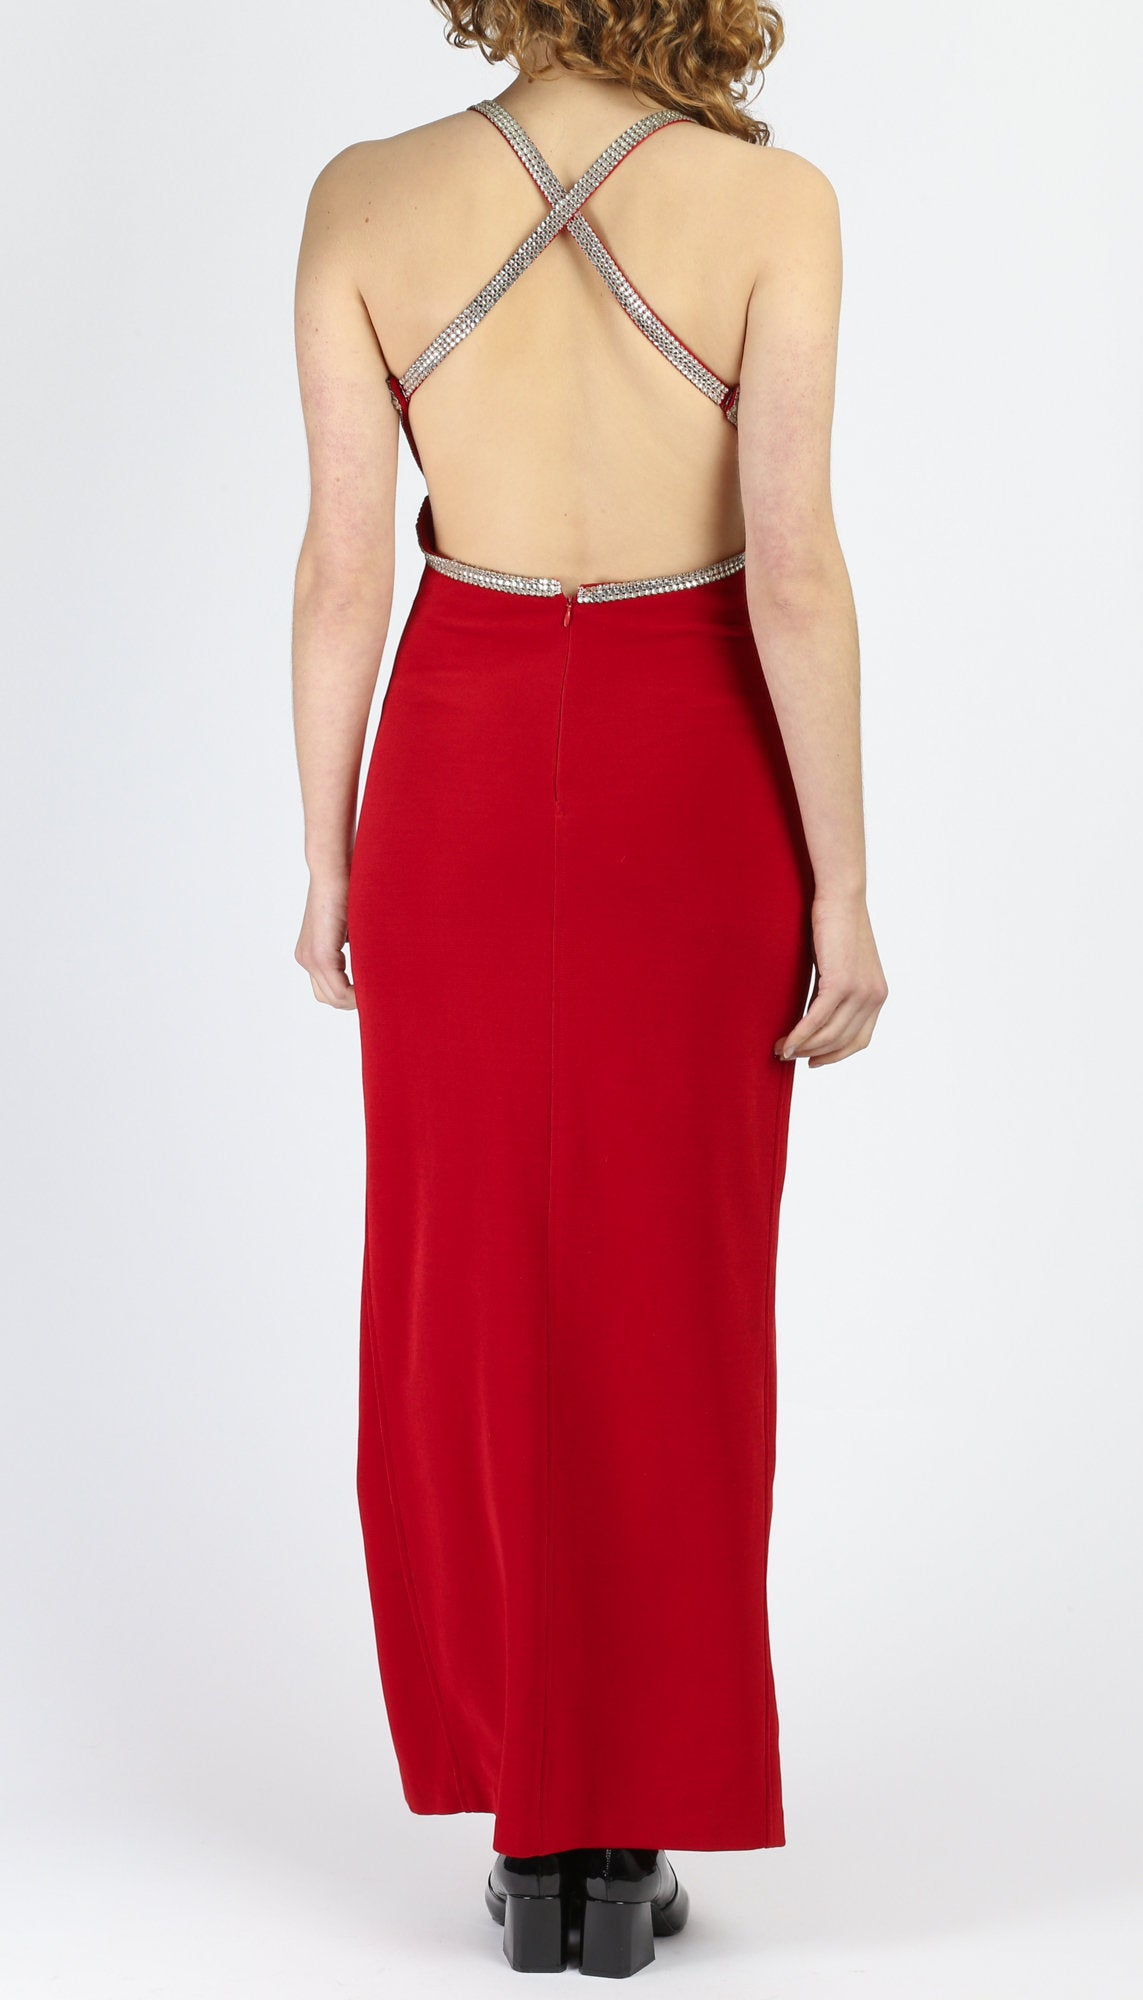 80s Red Backless Maxi Dress - Small to Medium